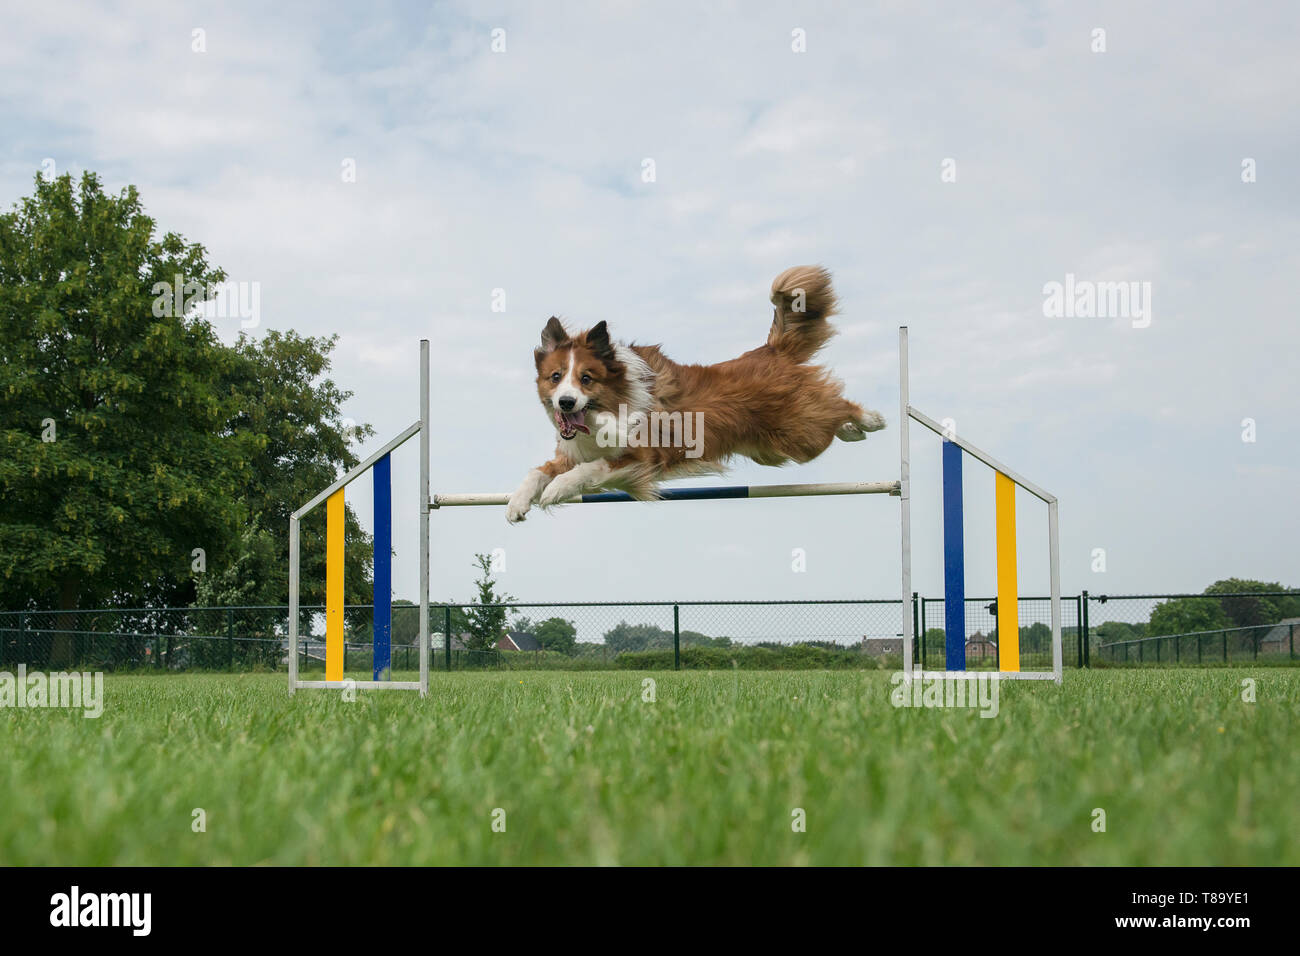 Border collie mixed dog jumping over a single jump  in an agility course while looking at the camera - Stock Image